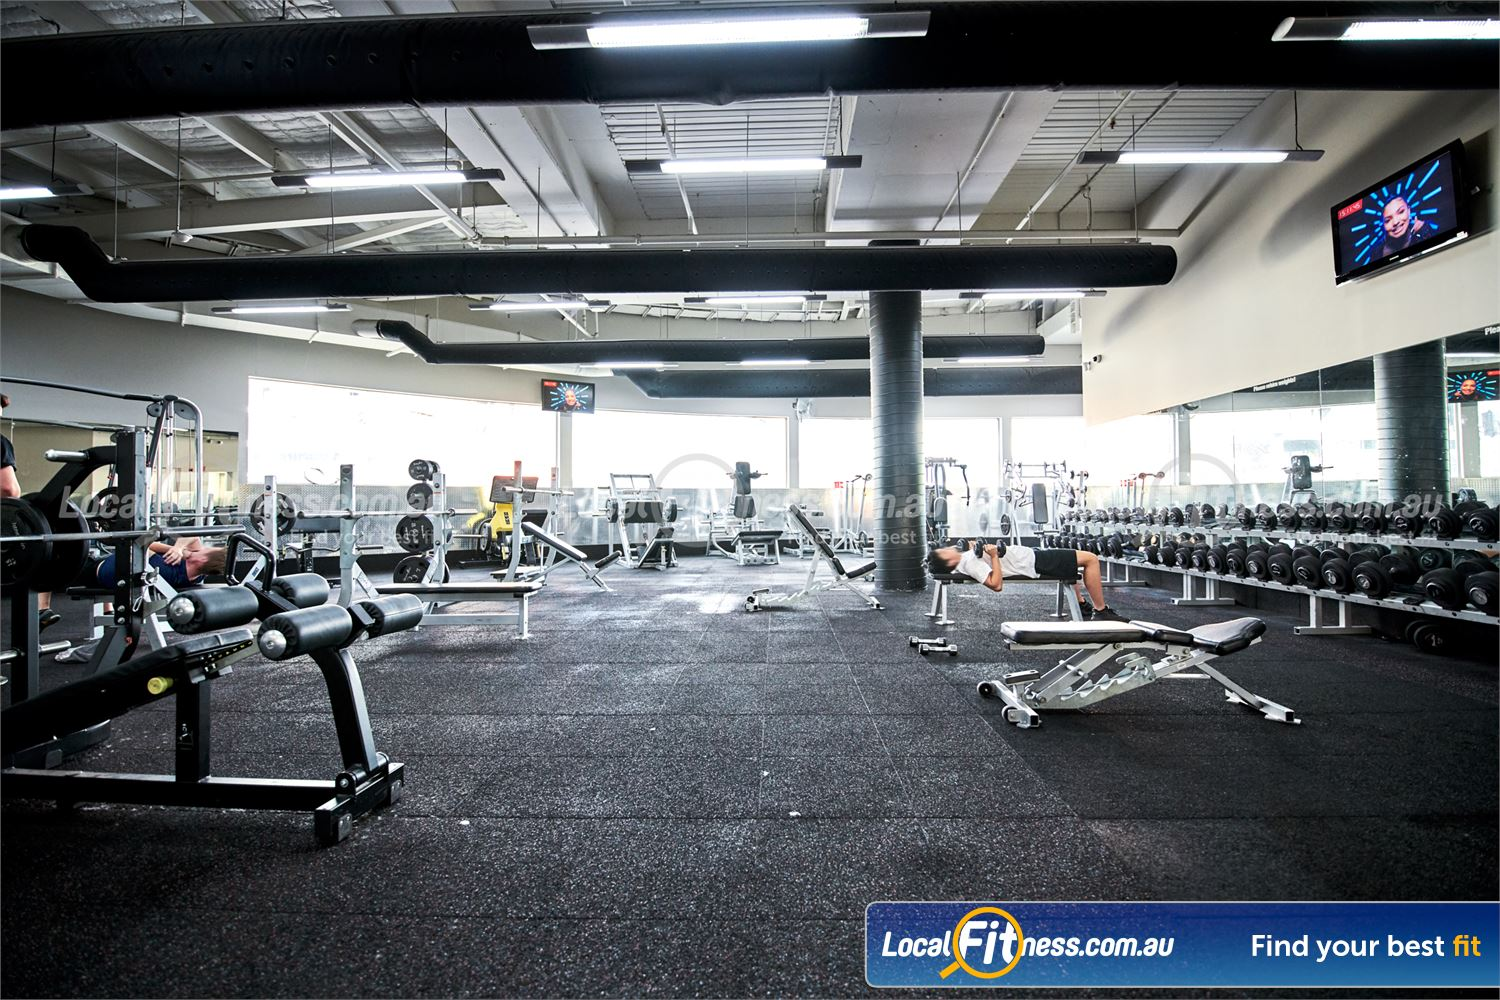 Fitness First Doncaster Fully equipped free-weights area inc. dumbbells, barbells, benches and more.